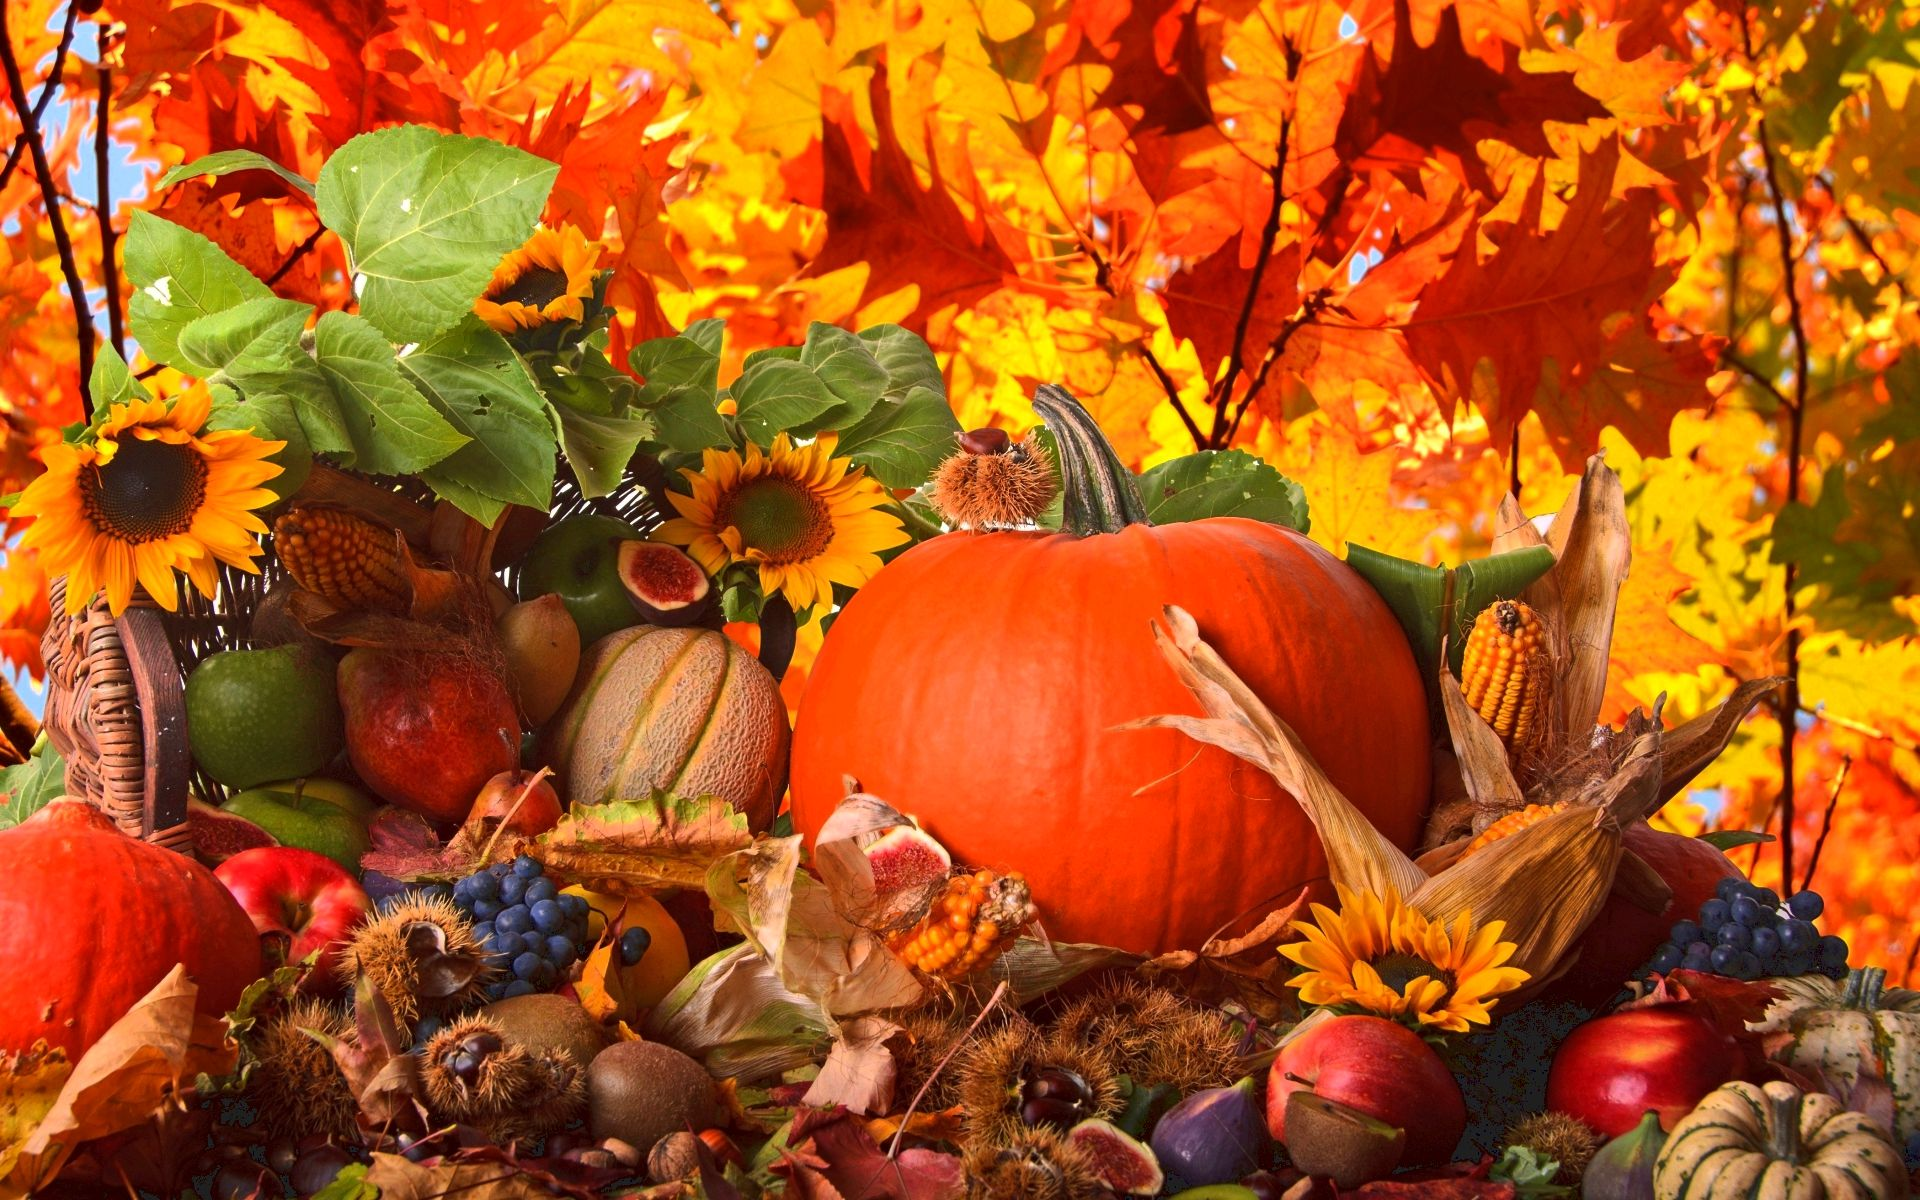 Thanksgiving wallpapers, thanksgiving backgrounds, thanksgiving images - desktop nexus JanineMelanie     Date